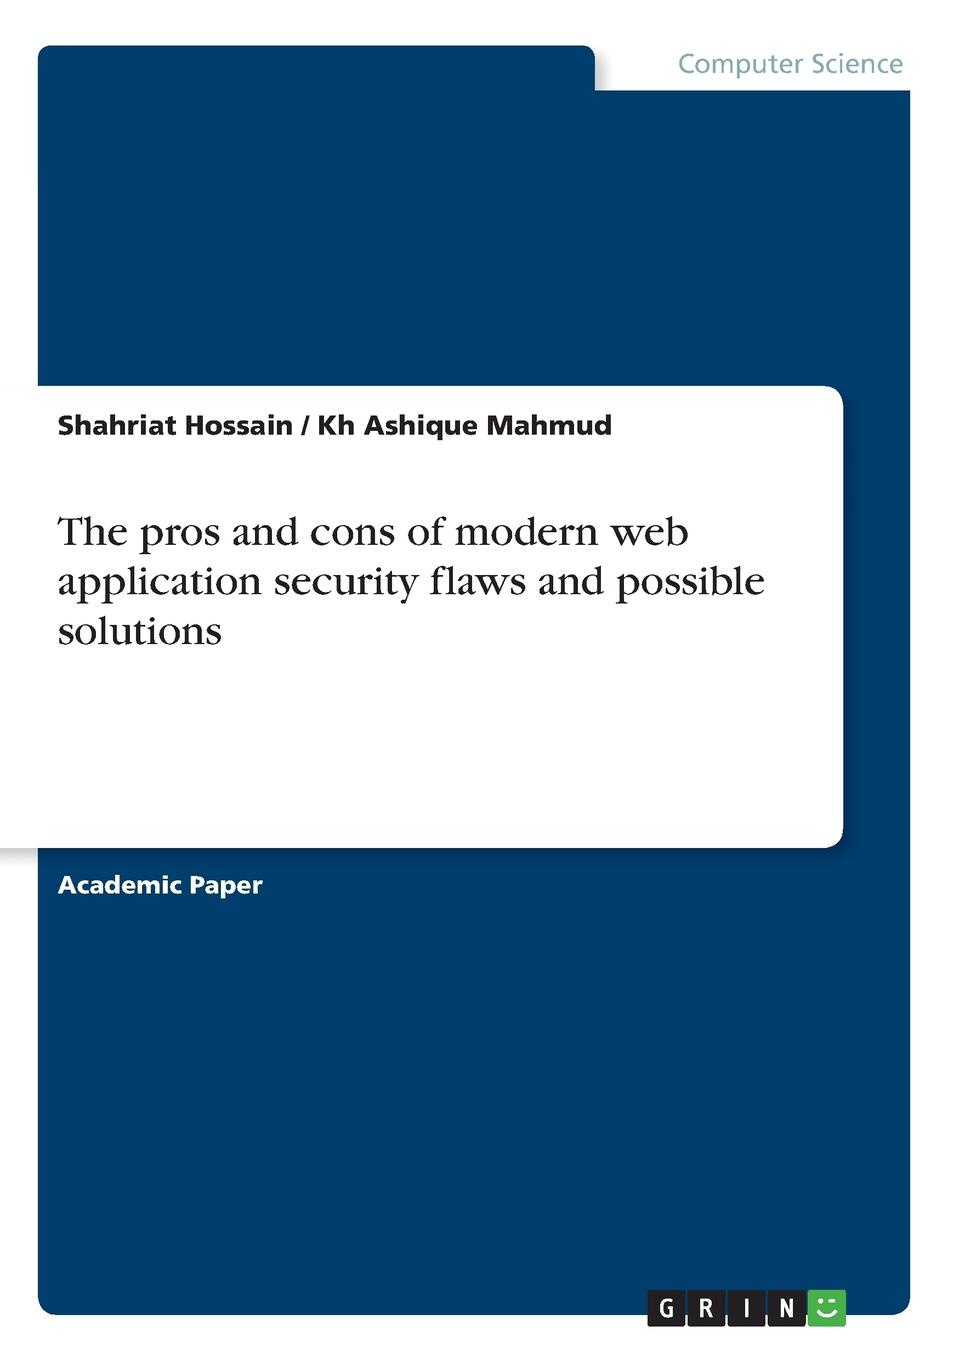 Shahriat Hossain, Kh Ashique Mahmud The pros and cons of modern web application security flaws and possible solutions dileep keshava narayana it application security and control